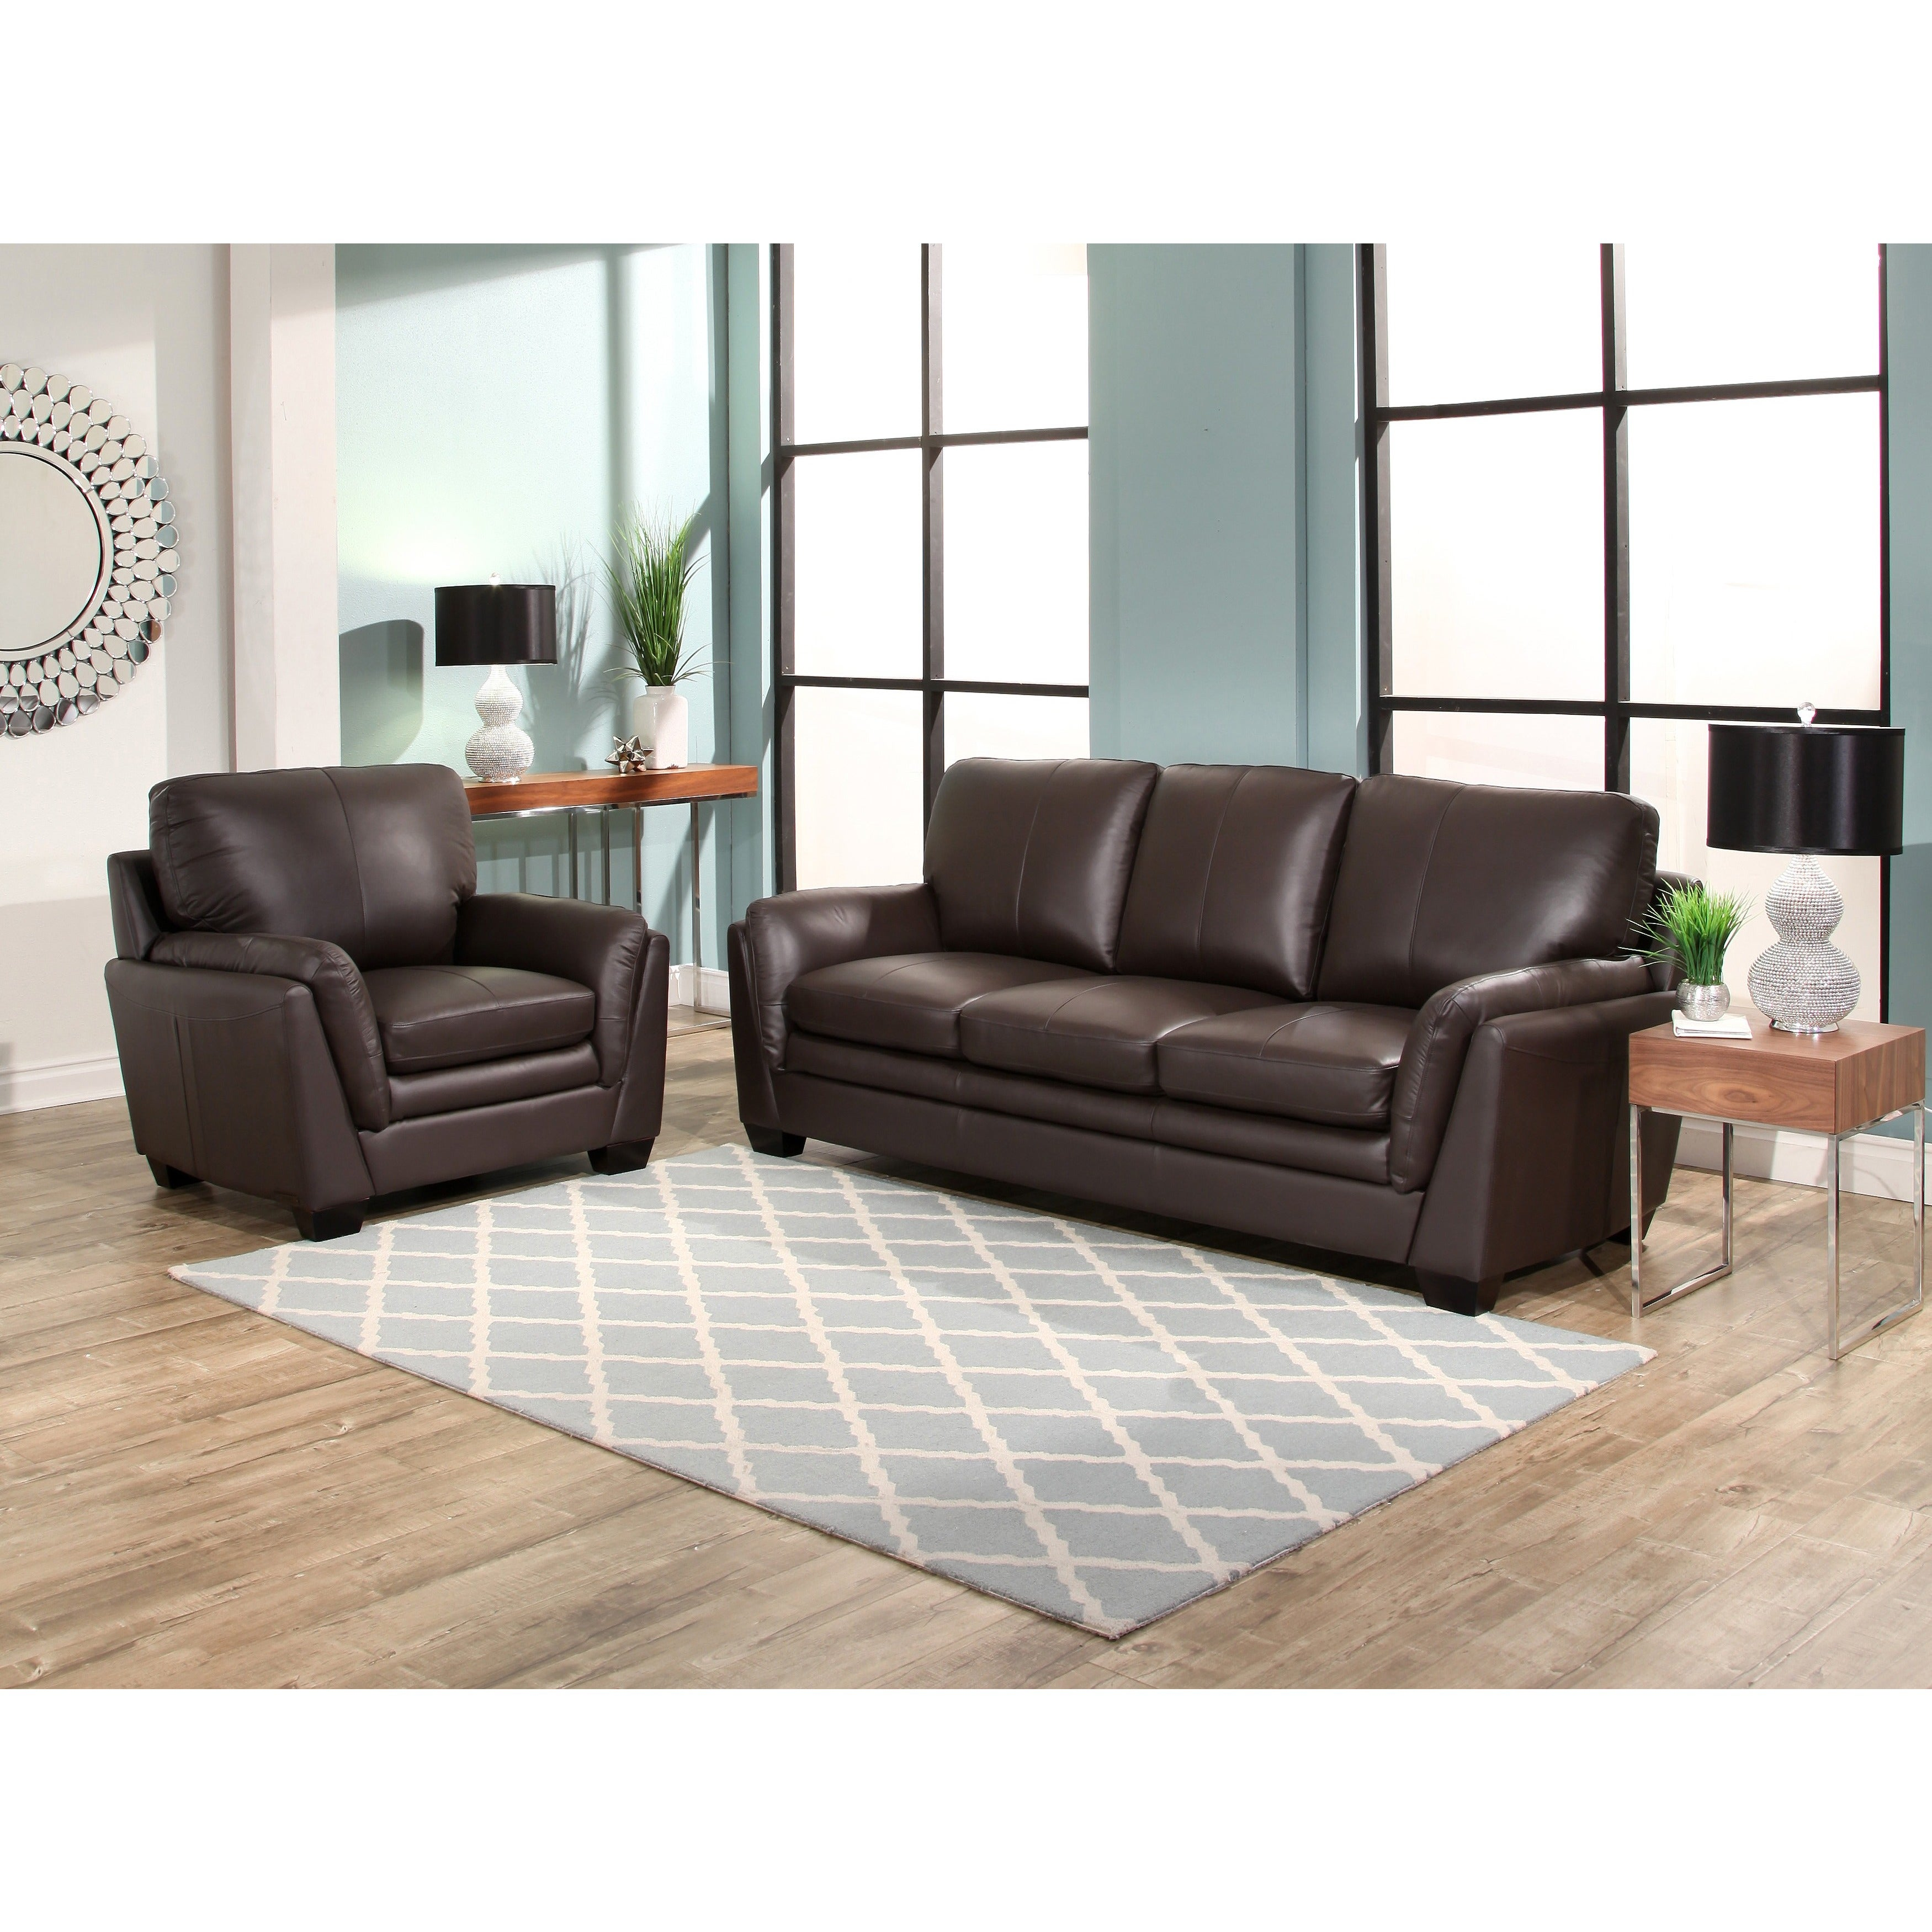 Abbyson Bella Brown Top Grain Leather 2 Piece Living Room...